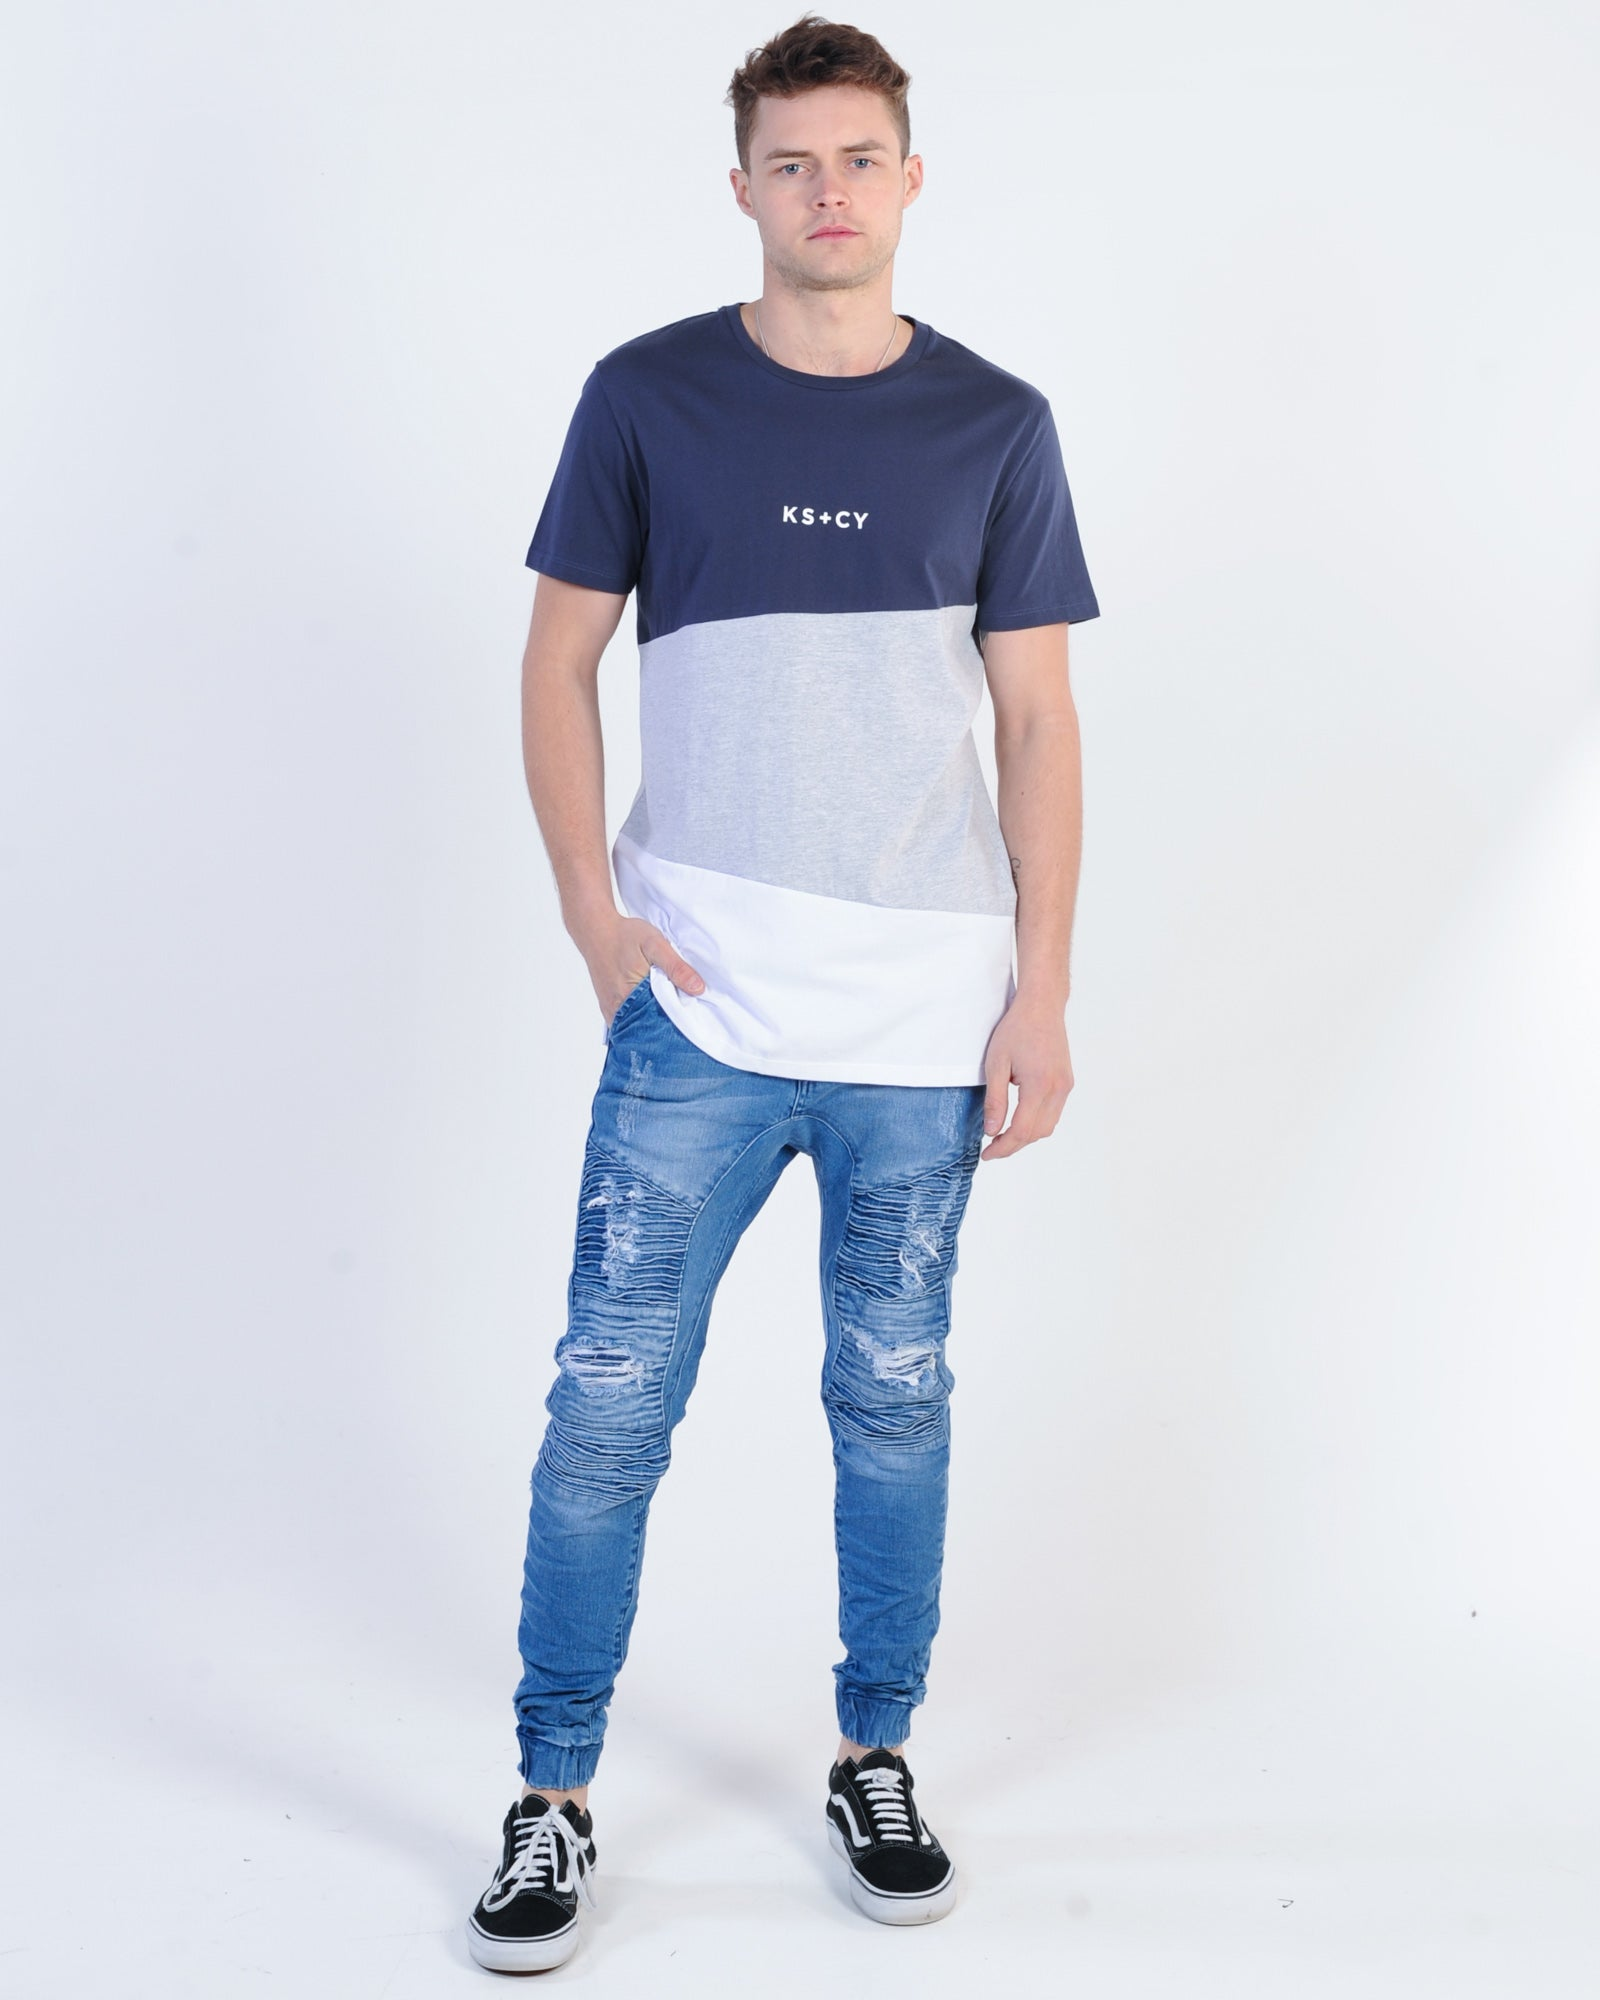 Kiss Chacey Future Tall Tee - Navy/Grey/White